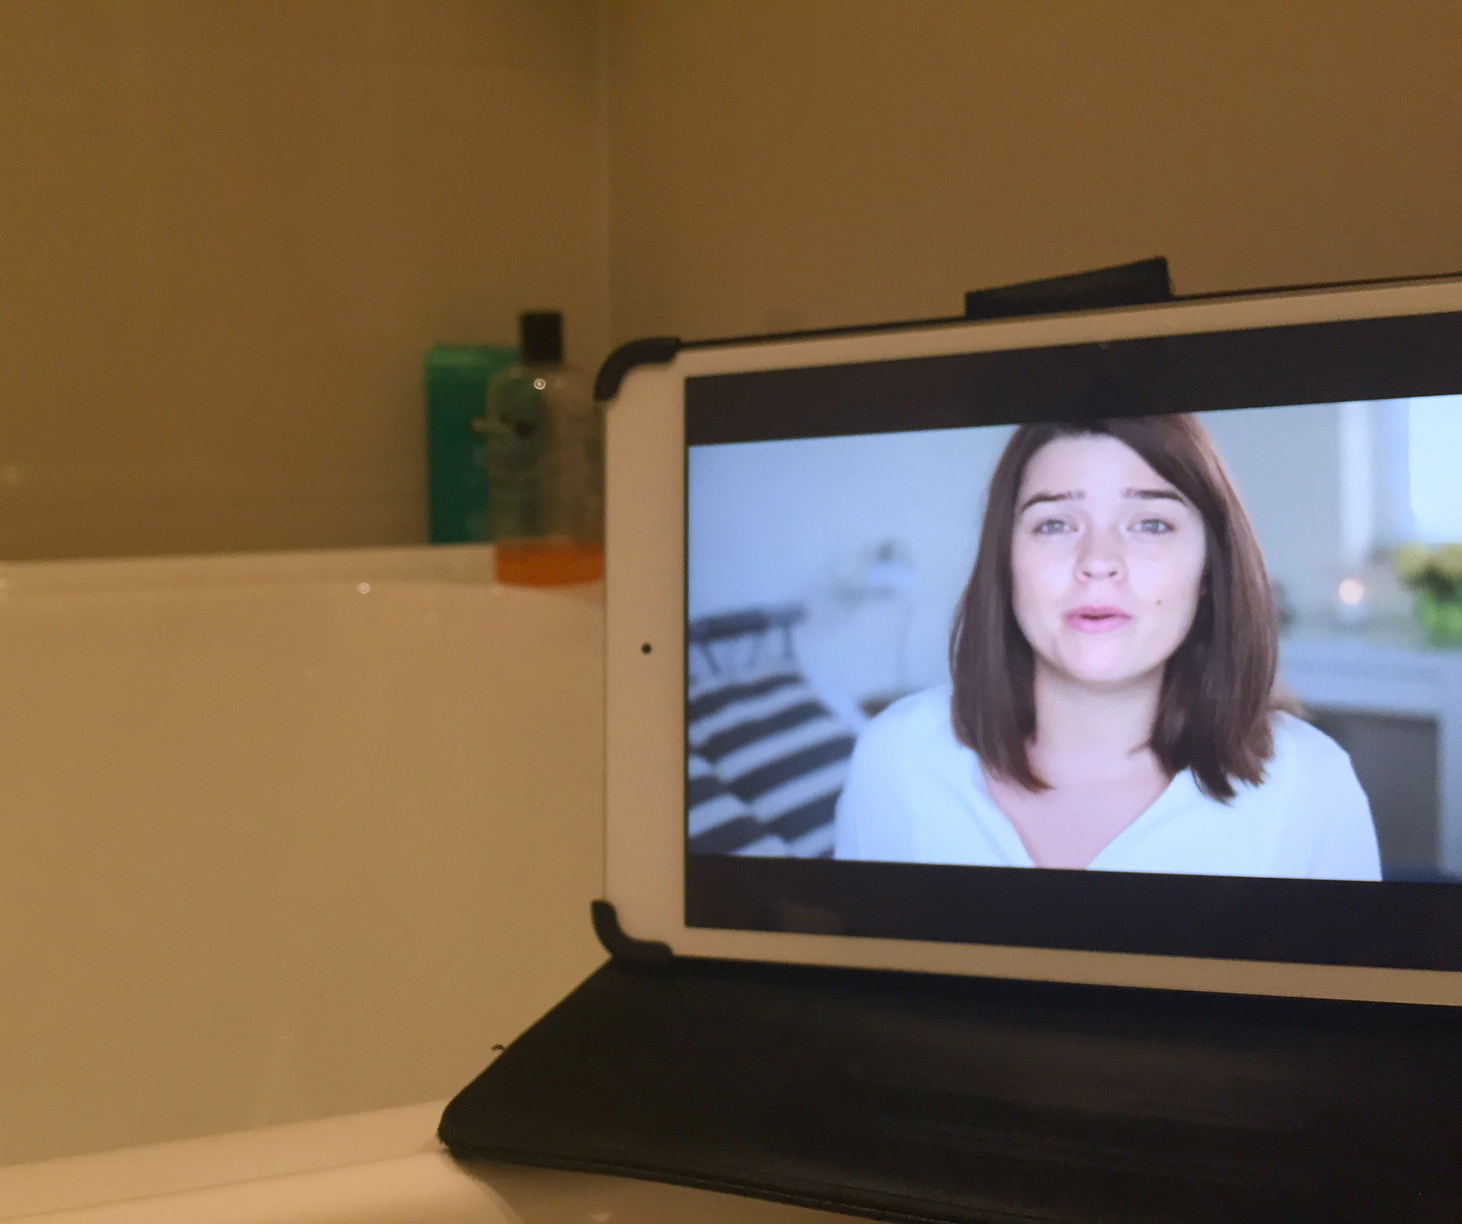 Yes, I watch YouTube in the bath...